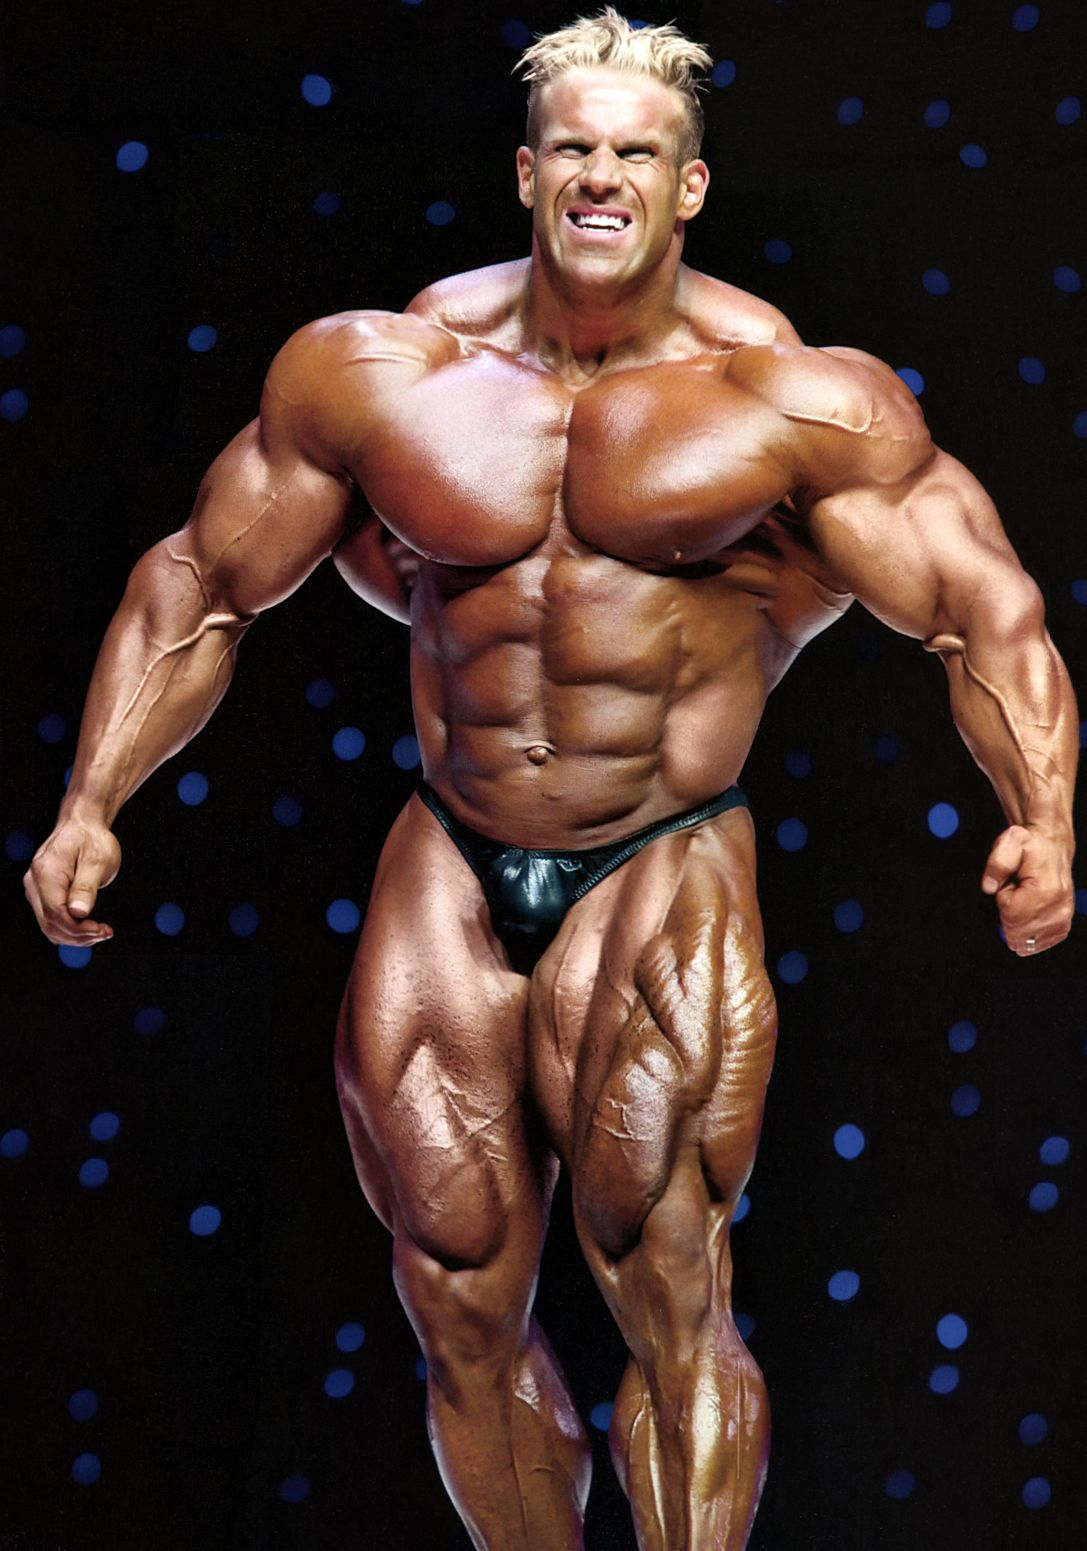 Jay Cutler Bodybuilding Must Admire The Commitment It